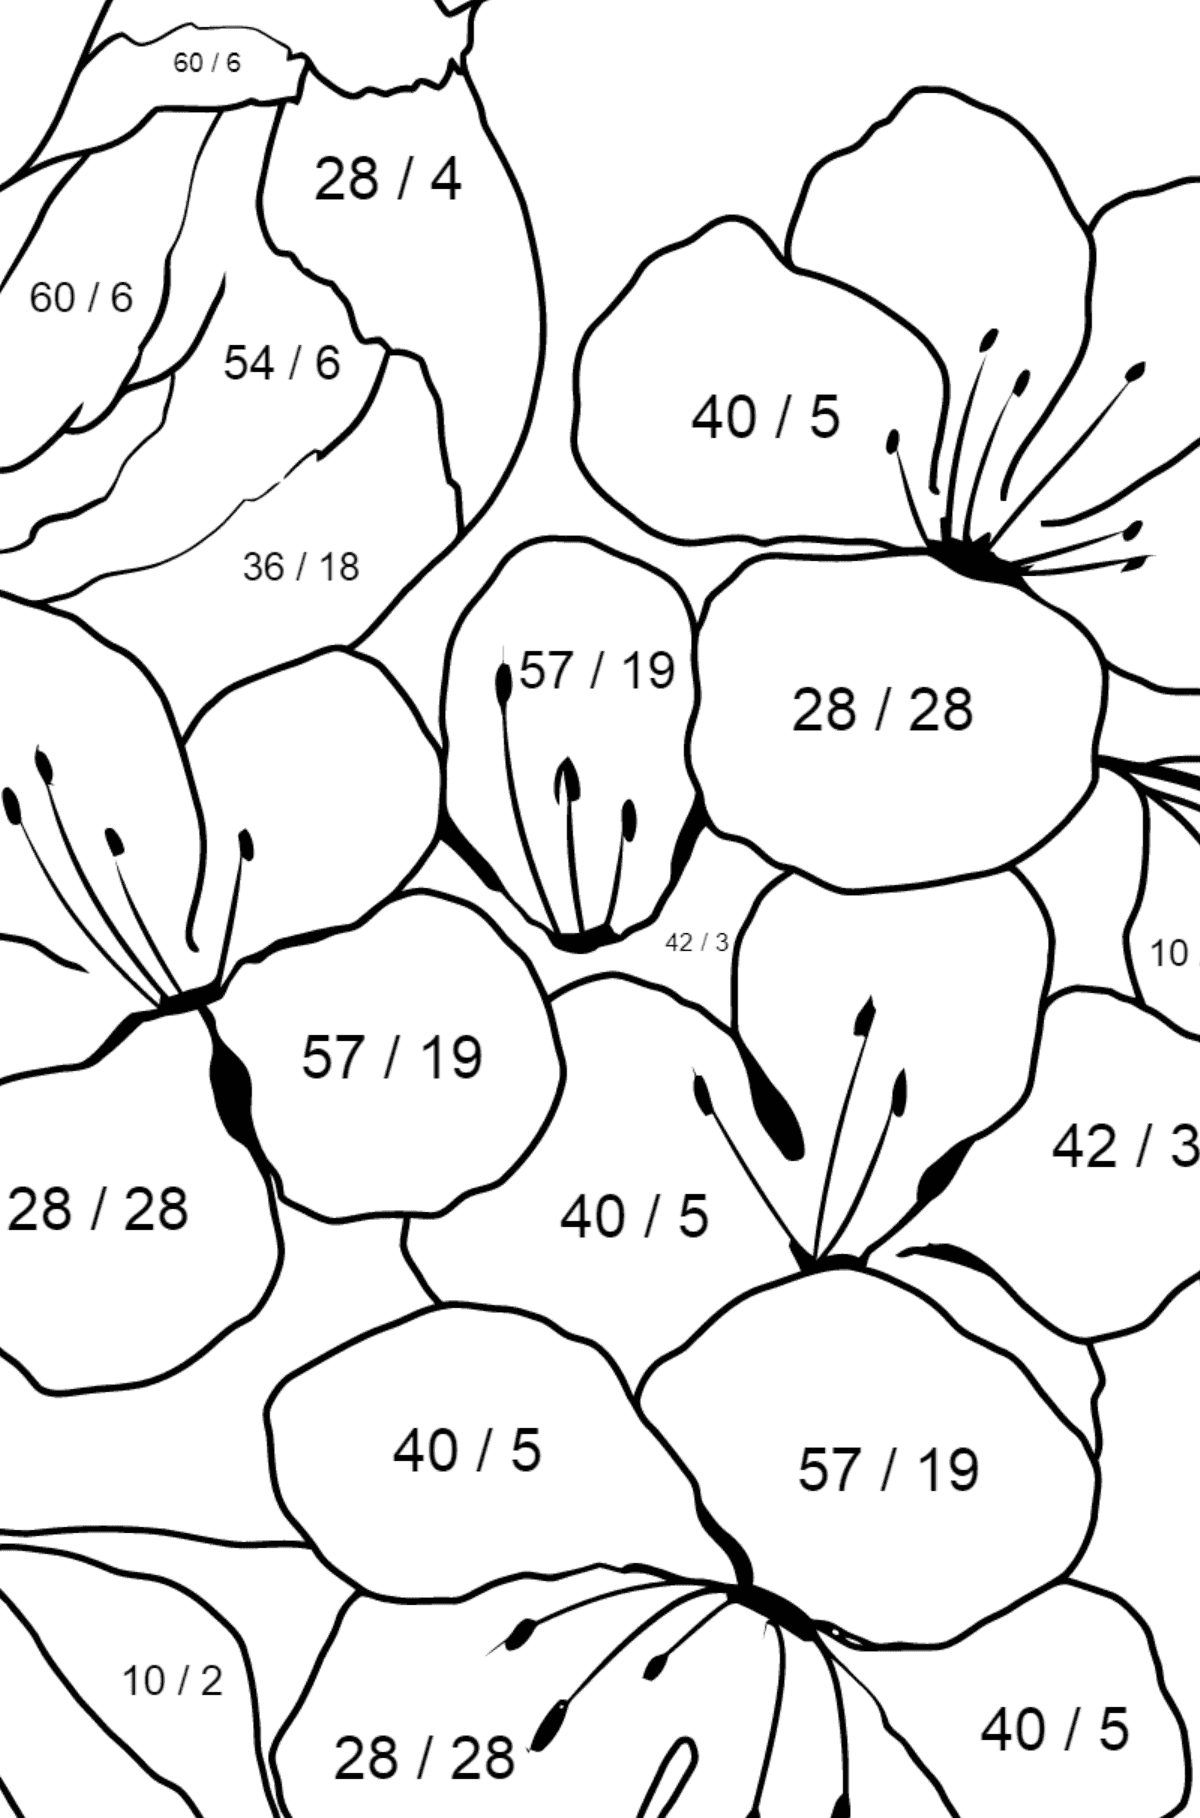 Summer Coloring Page - A Bird is Chirping on the Branch of an Apple Tree for Kids  - Color by Number Division